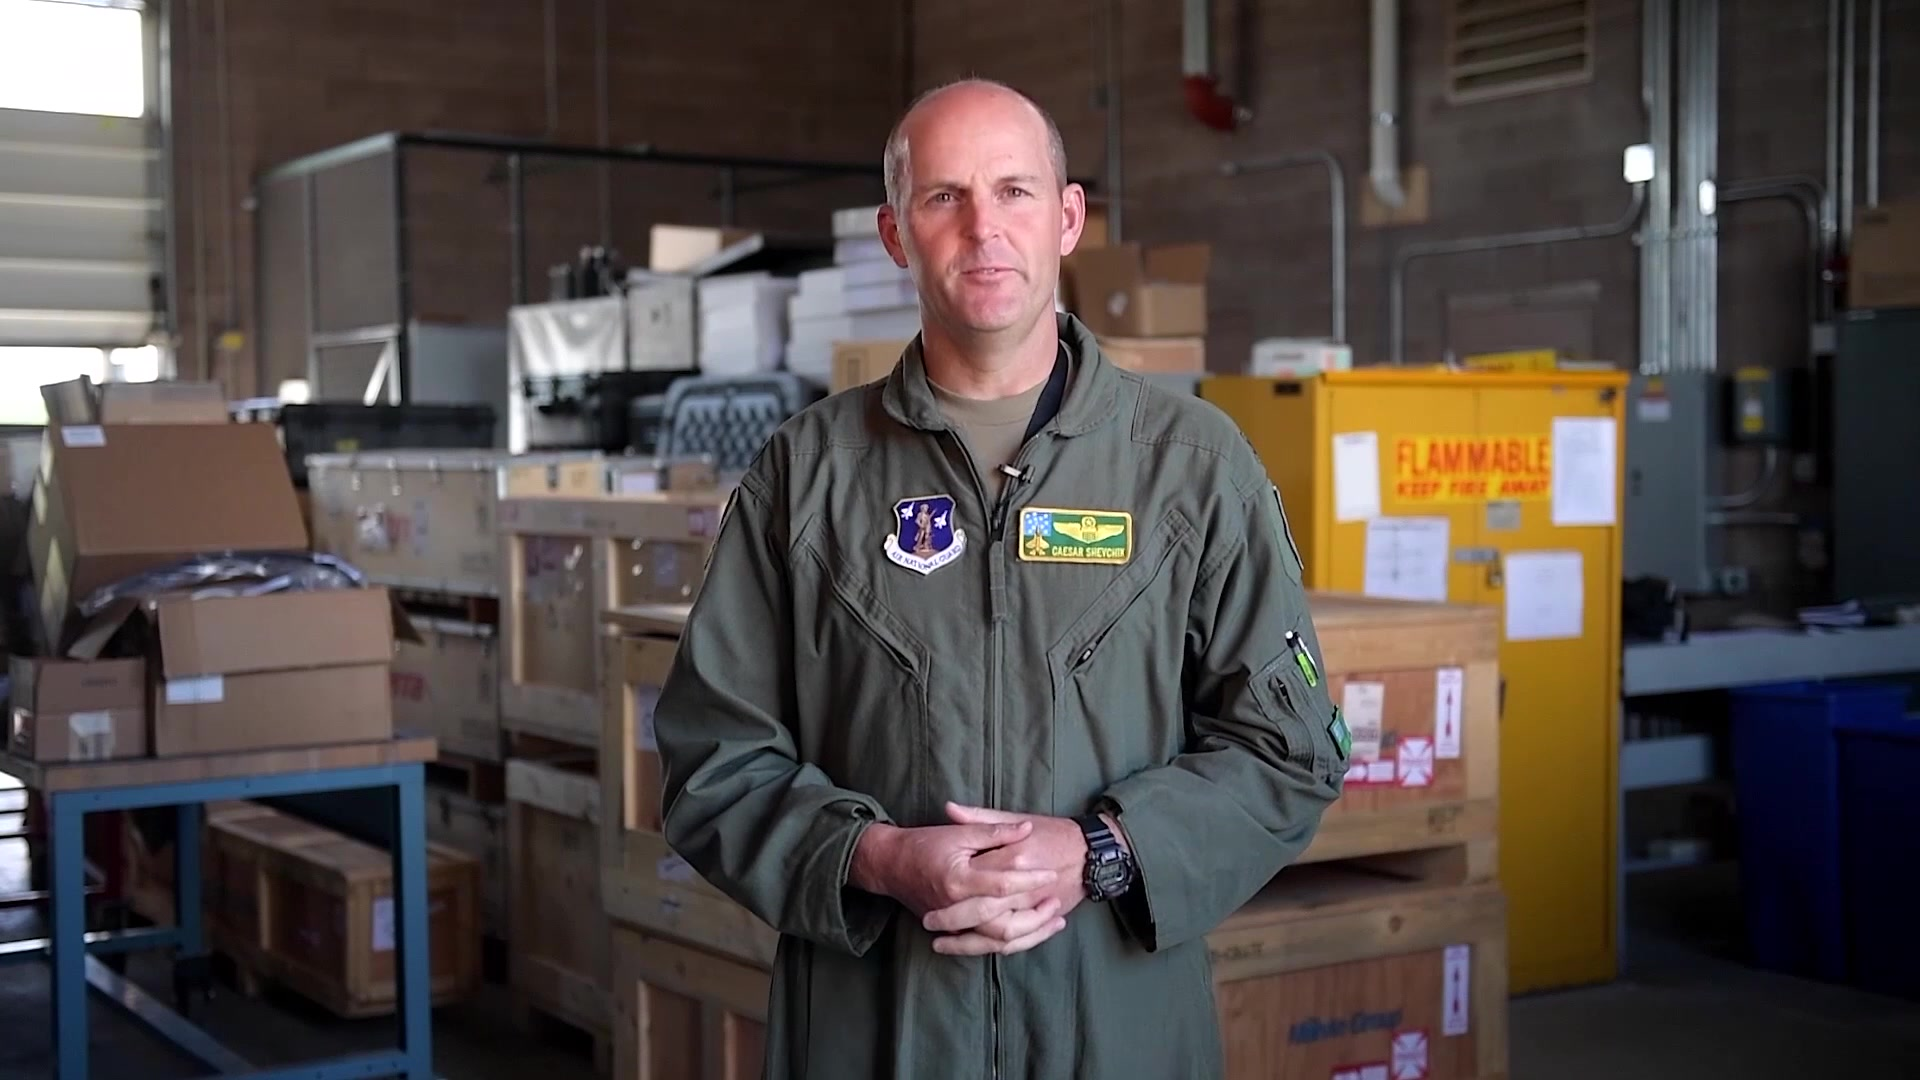 As the VTANG begins their first in person drill since COVID-19 restrictions, and we head out the door for Northern Lightening, please take a moment to listen to an important message from Col Shevchik.